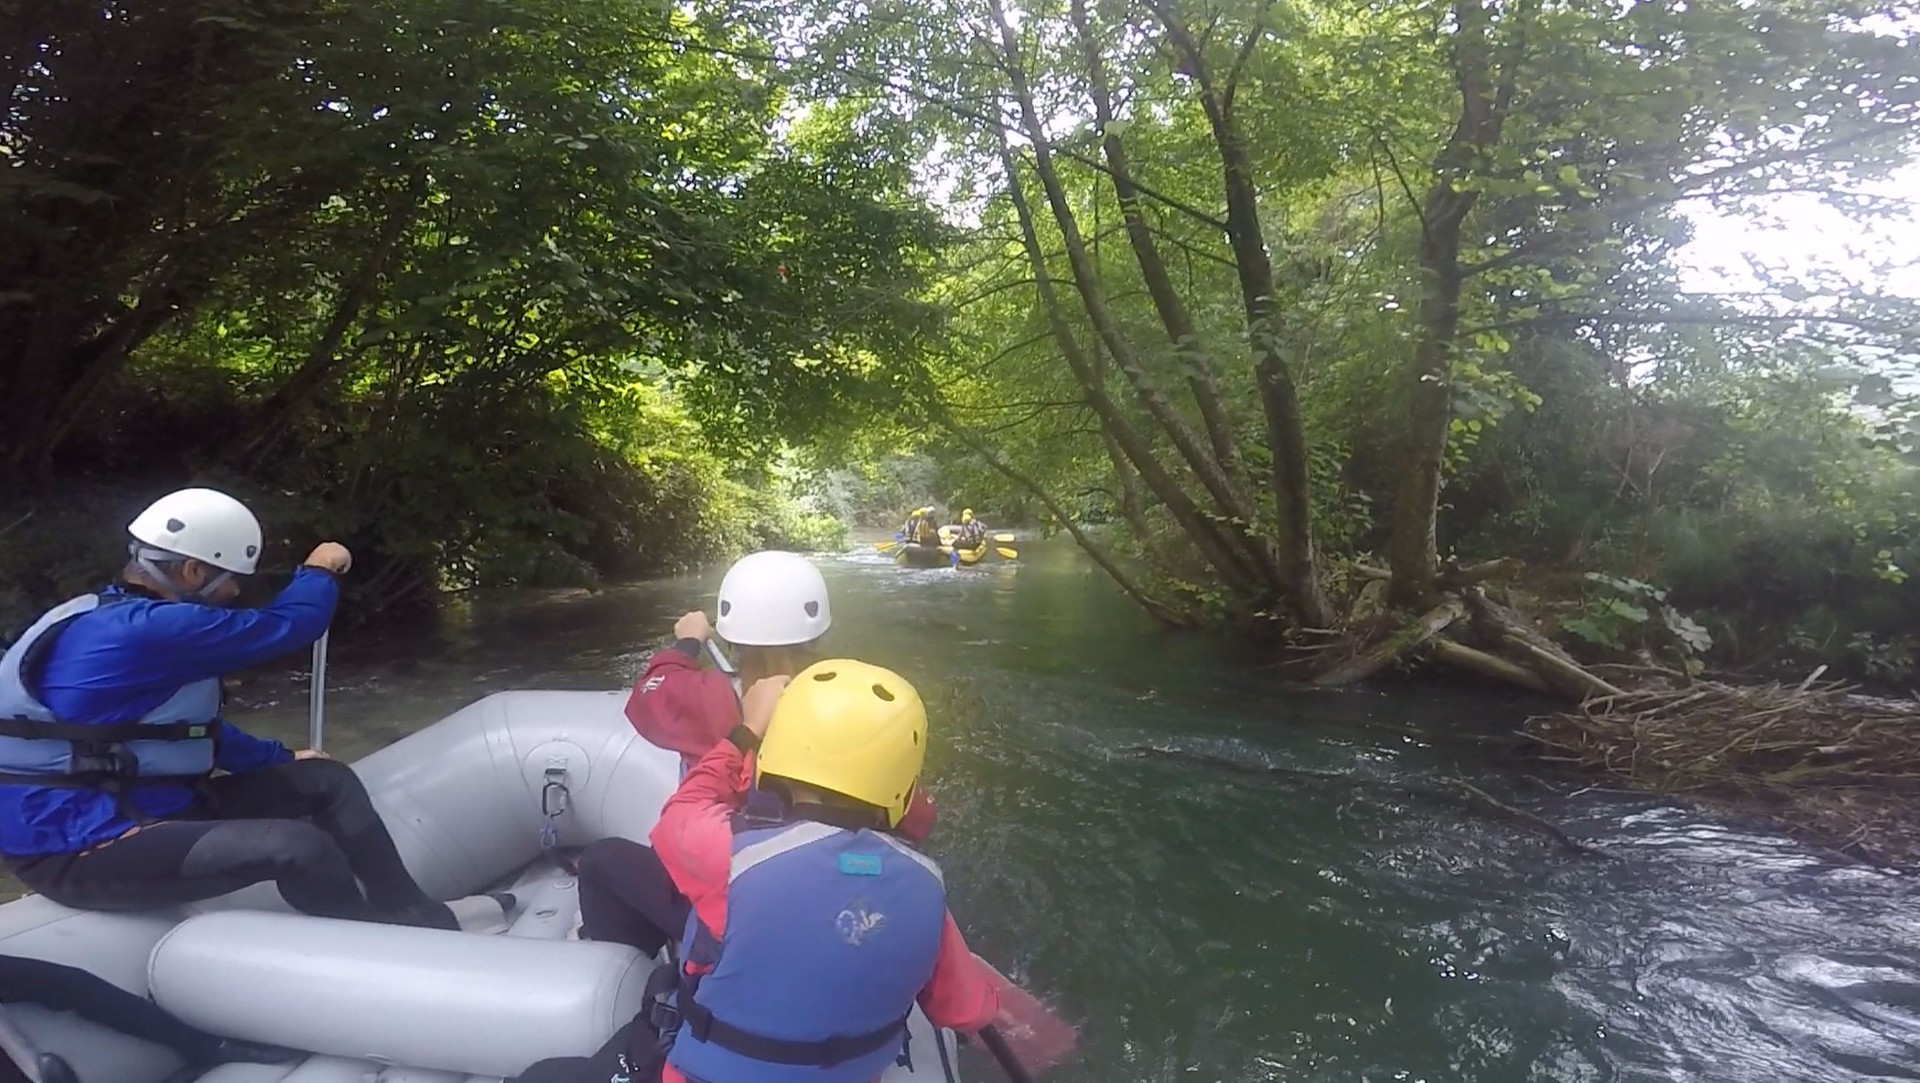 The best places to go rafting in Umbria